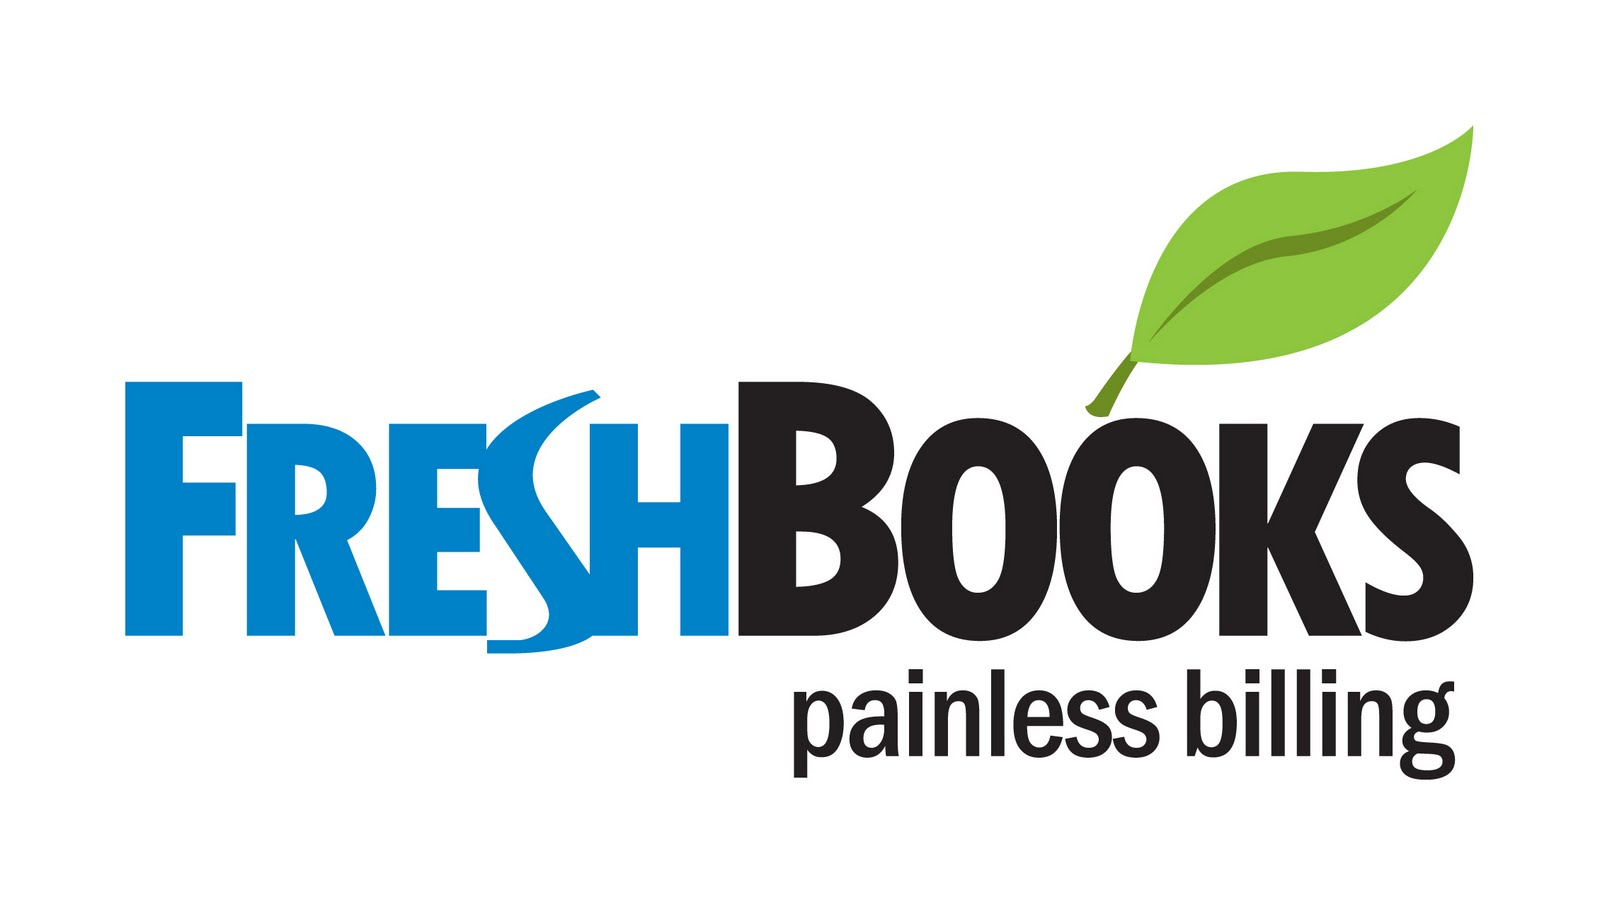 Freshbooks offers painless invoicing